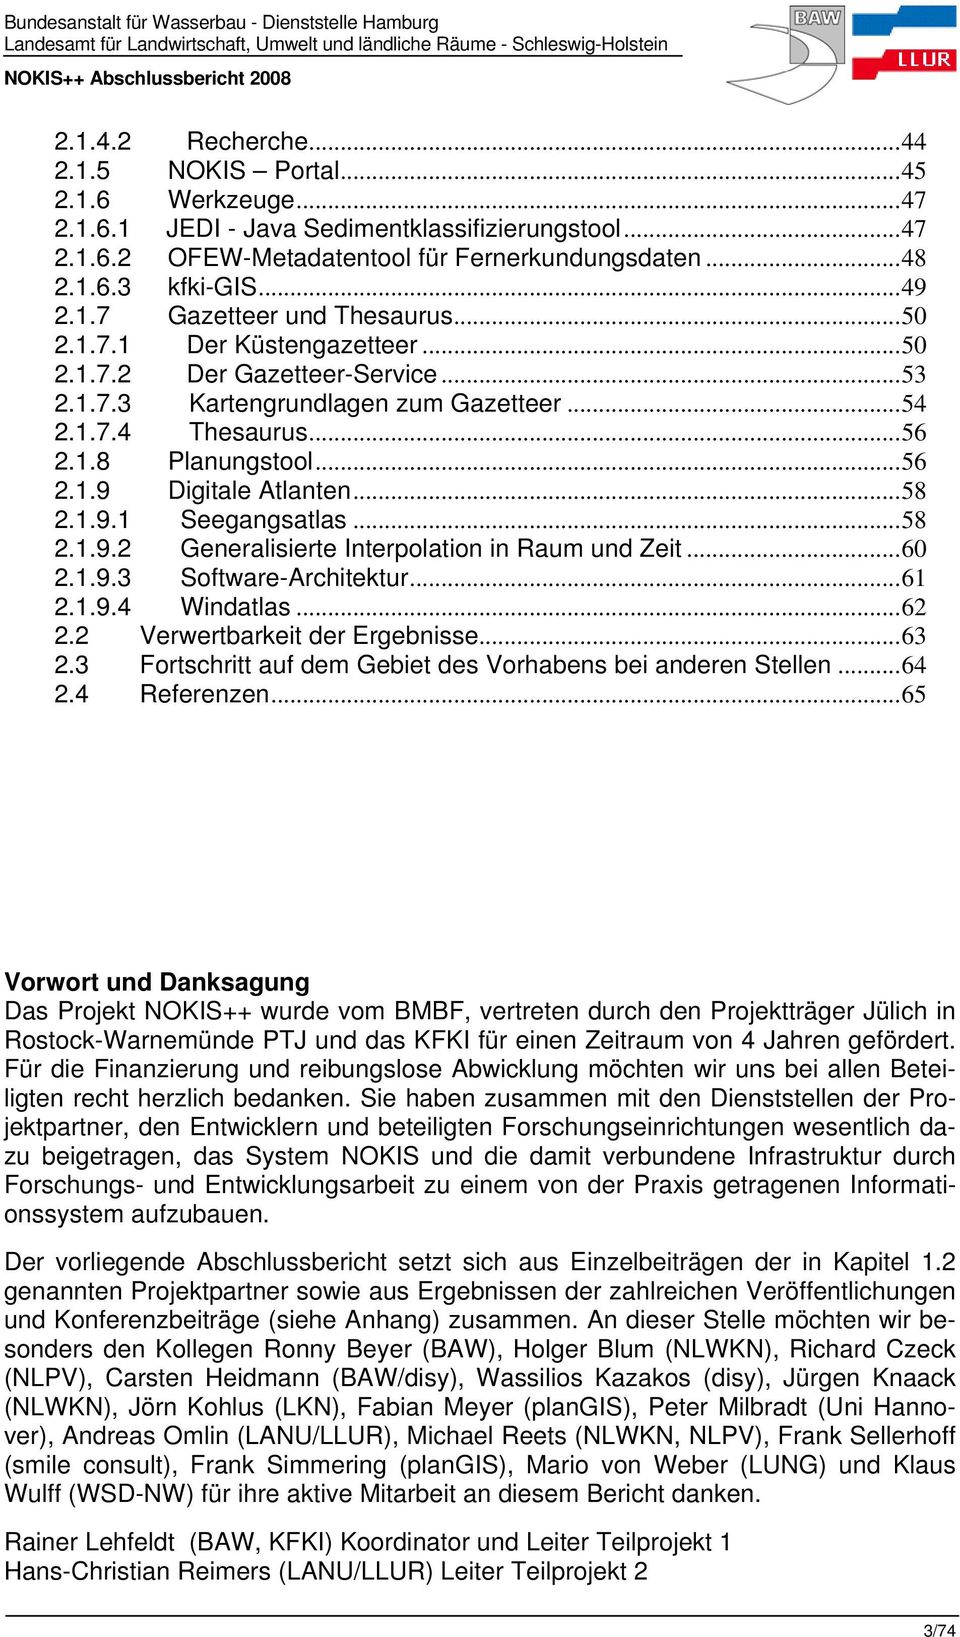 ..50 2.1.7.2 Der Gazetteer-Service...53 2.1.7.3 Kartengrundlagen zum Gazetteer...54 2.1.7.4 Thesaurus...56 2.1.8 Planungstool...56 2.1.9 Digitale Atlanten...58 2.1.9.1 Seegangsatlas...58 2.1.9.2 Generalisierte Interpolation in Raum und Zeit.